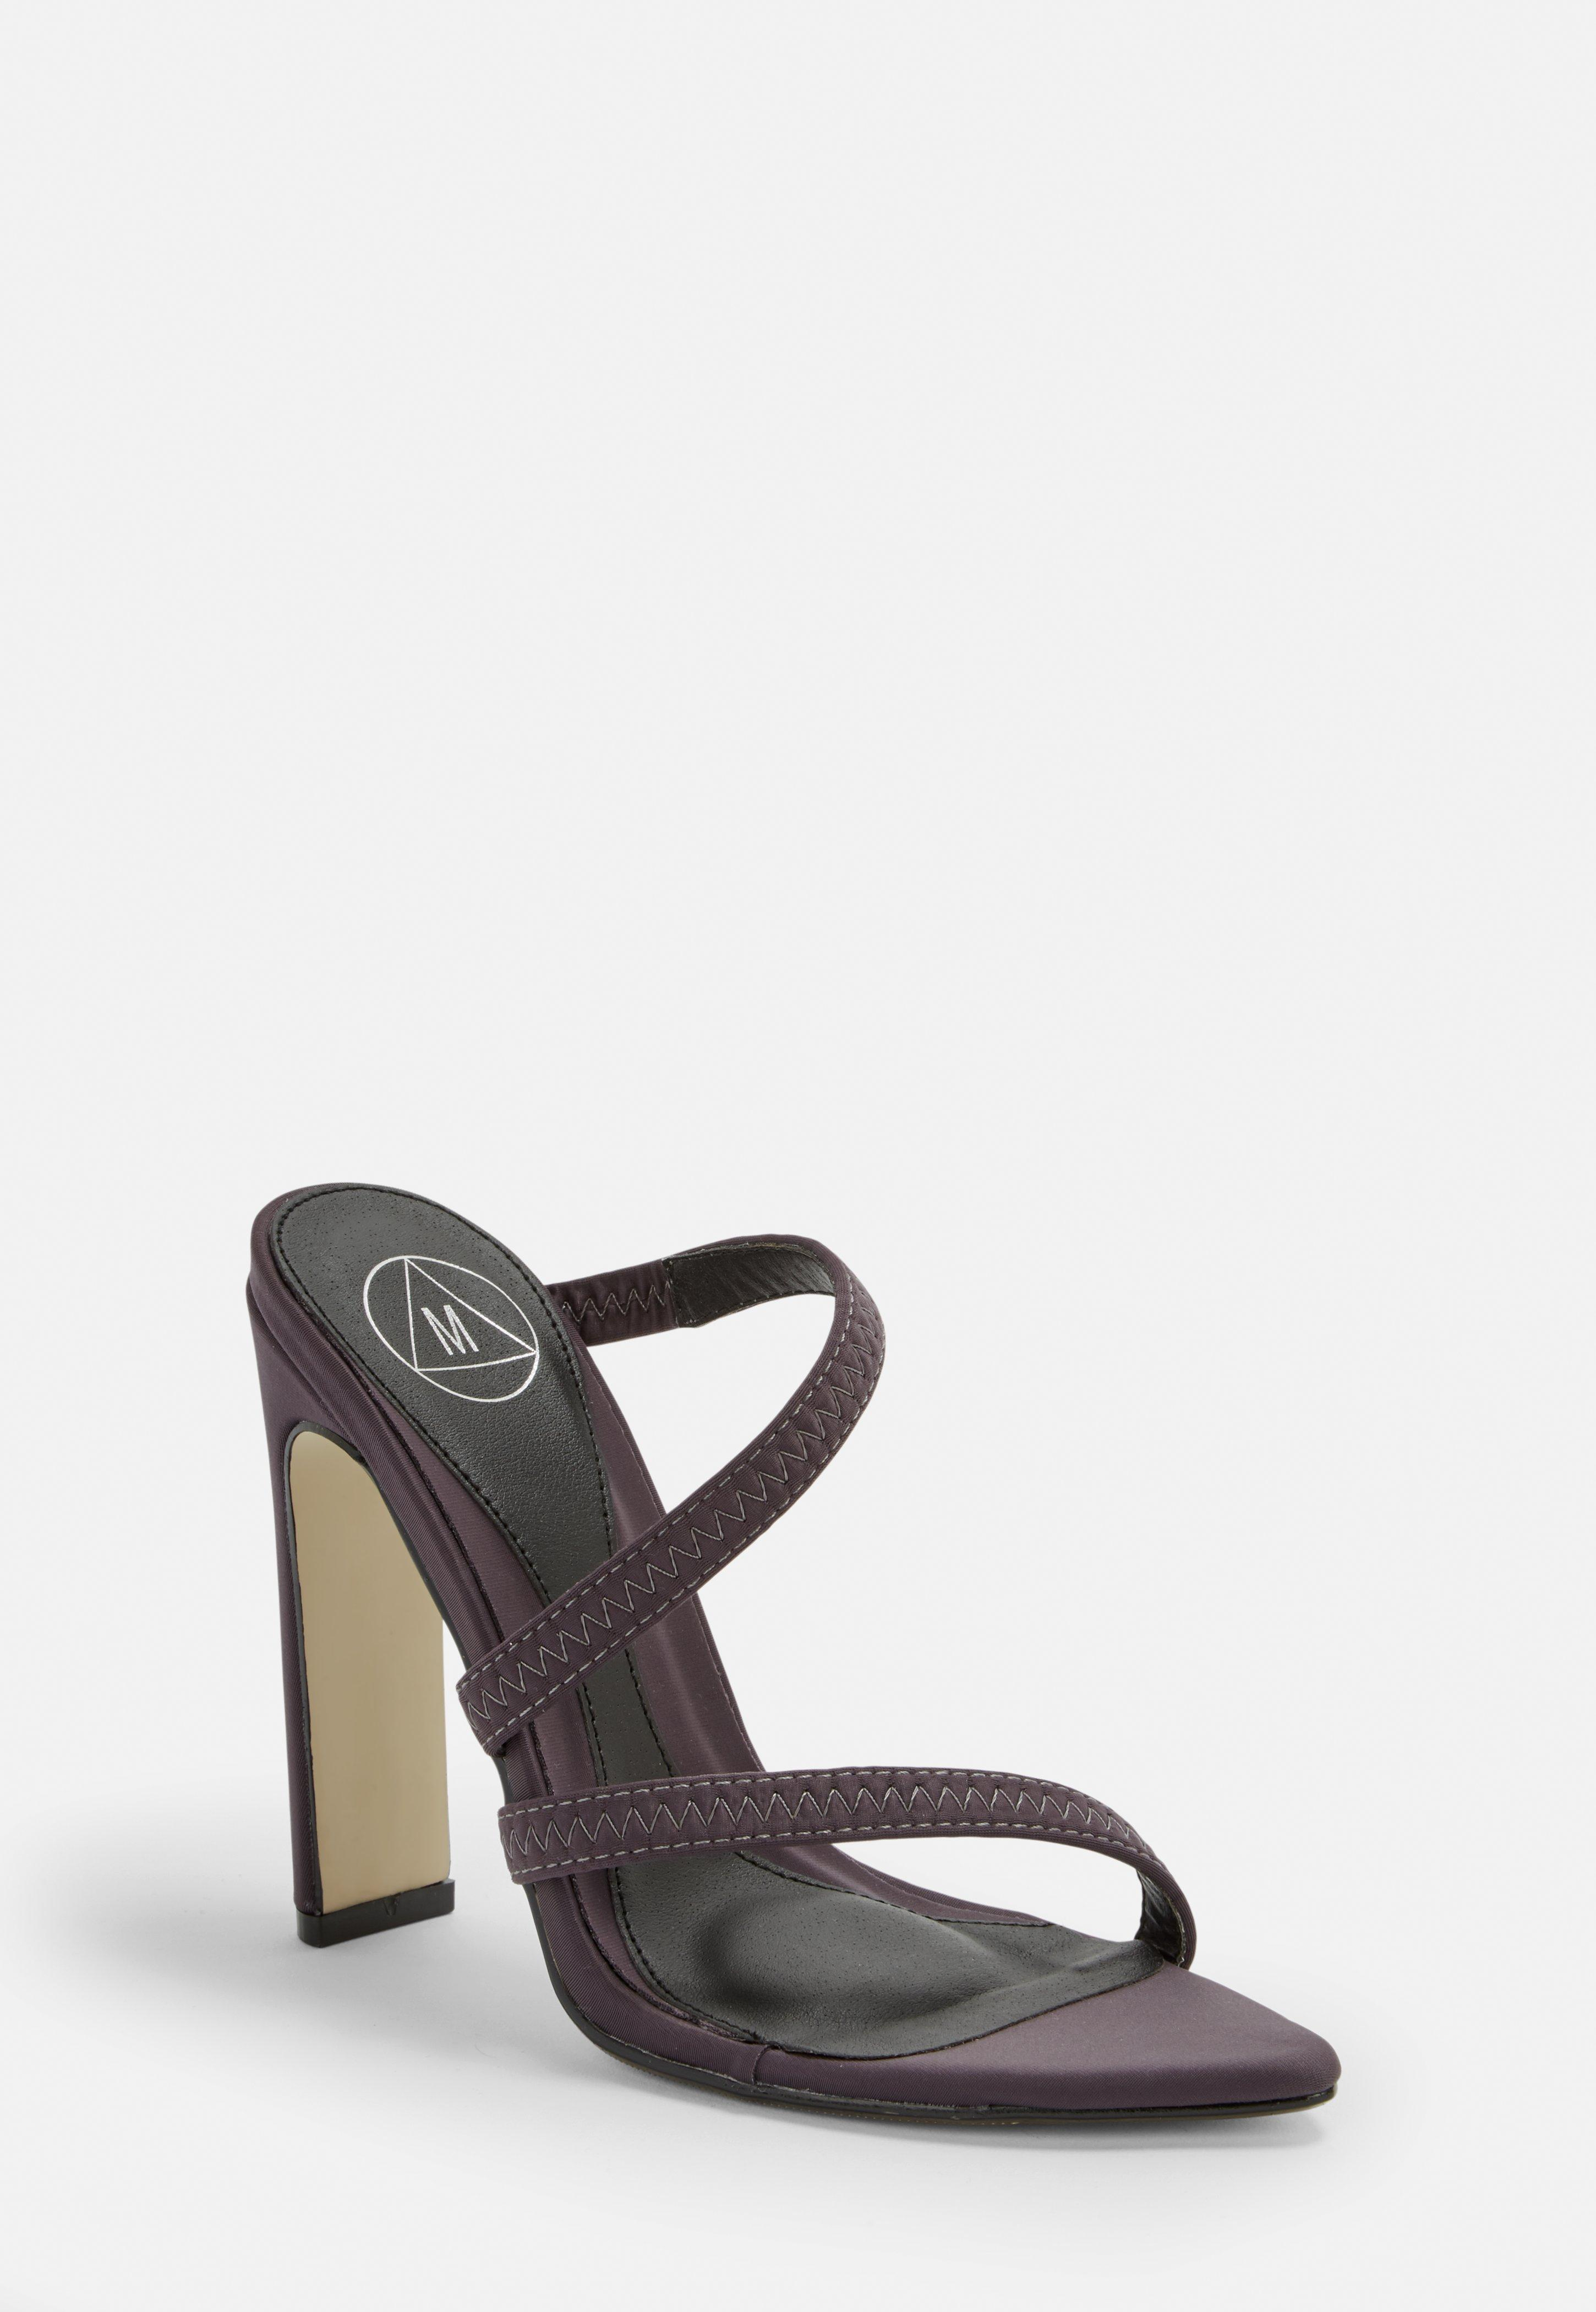 1307a4c9be8 Heeled Sandals